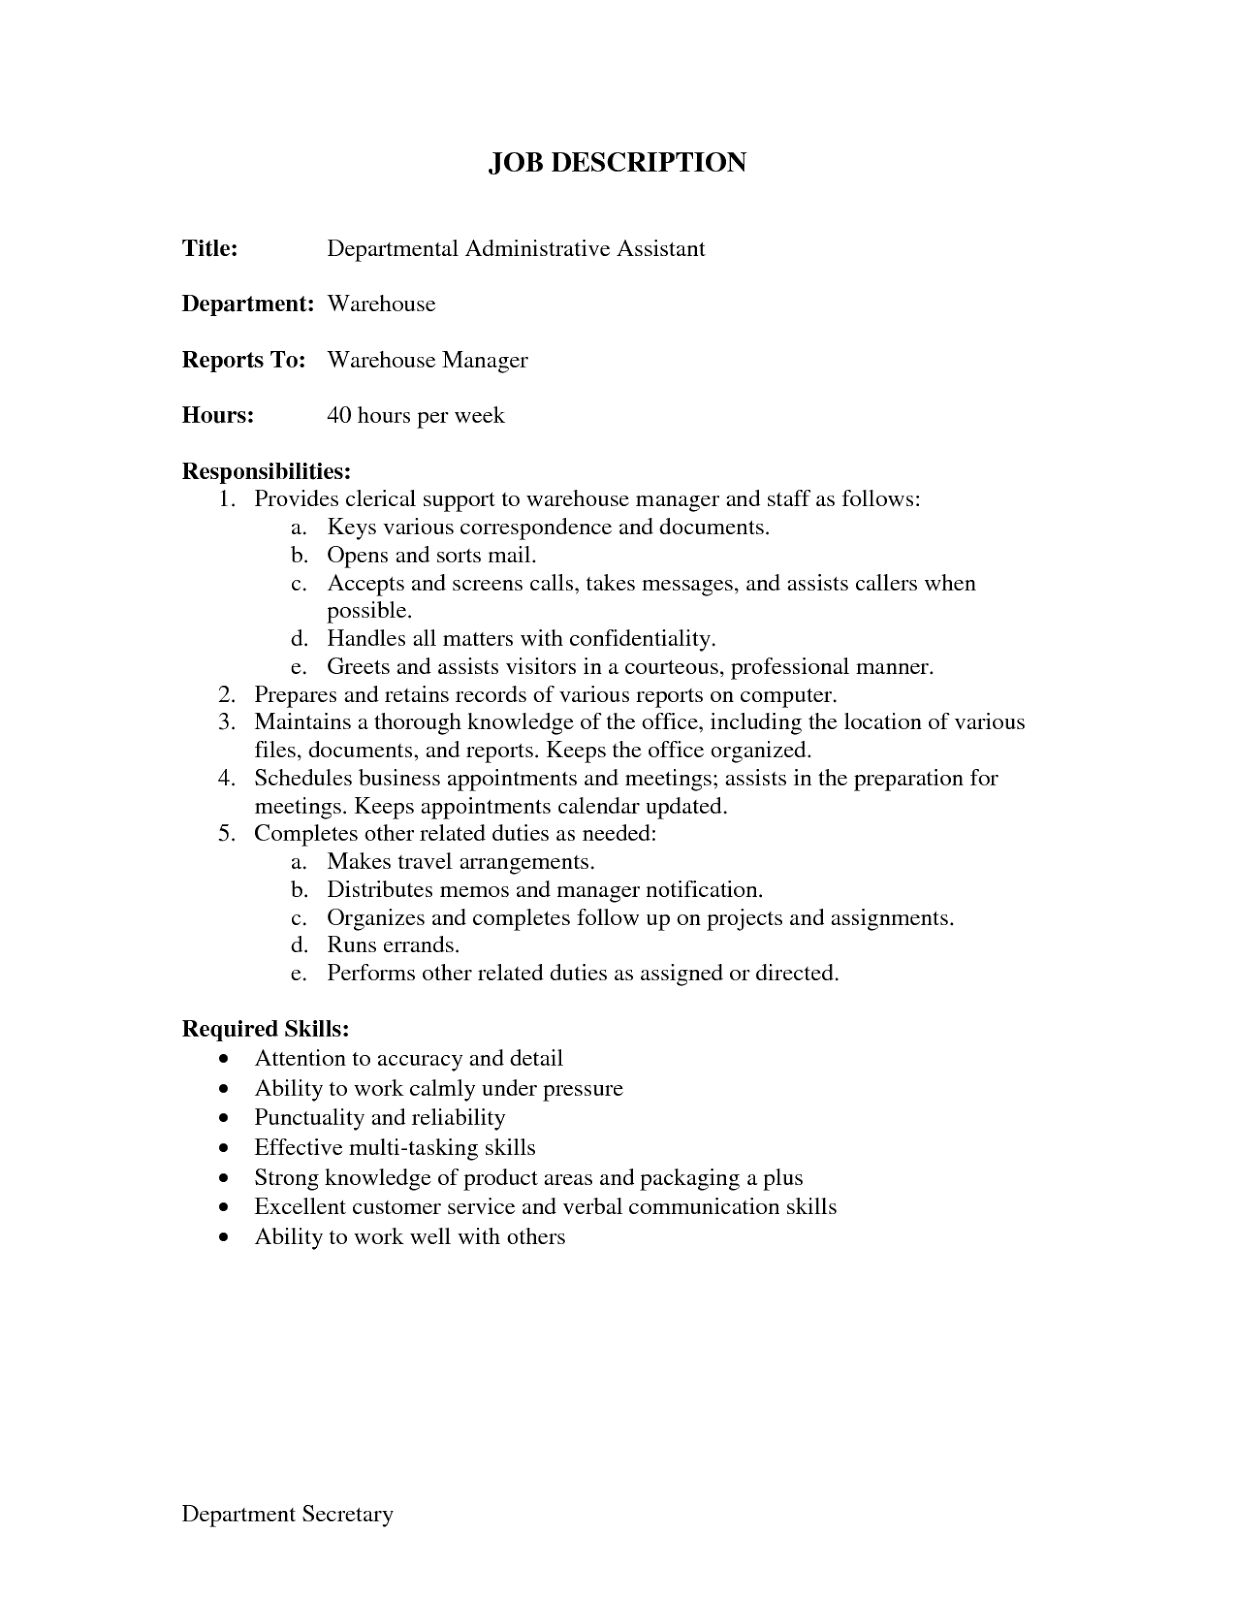 Job Description for Administrative Assistant for Resume | free ...